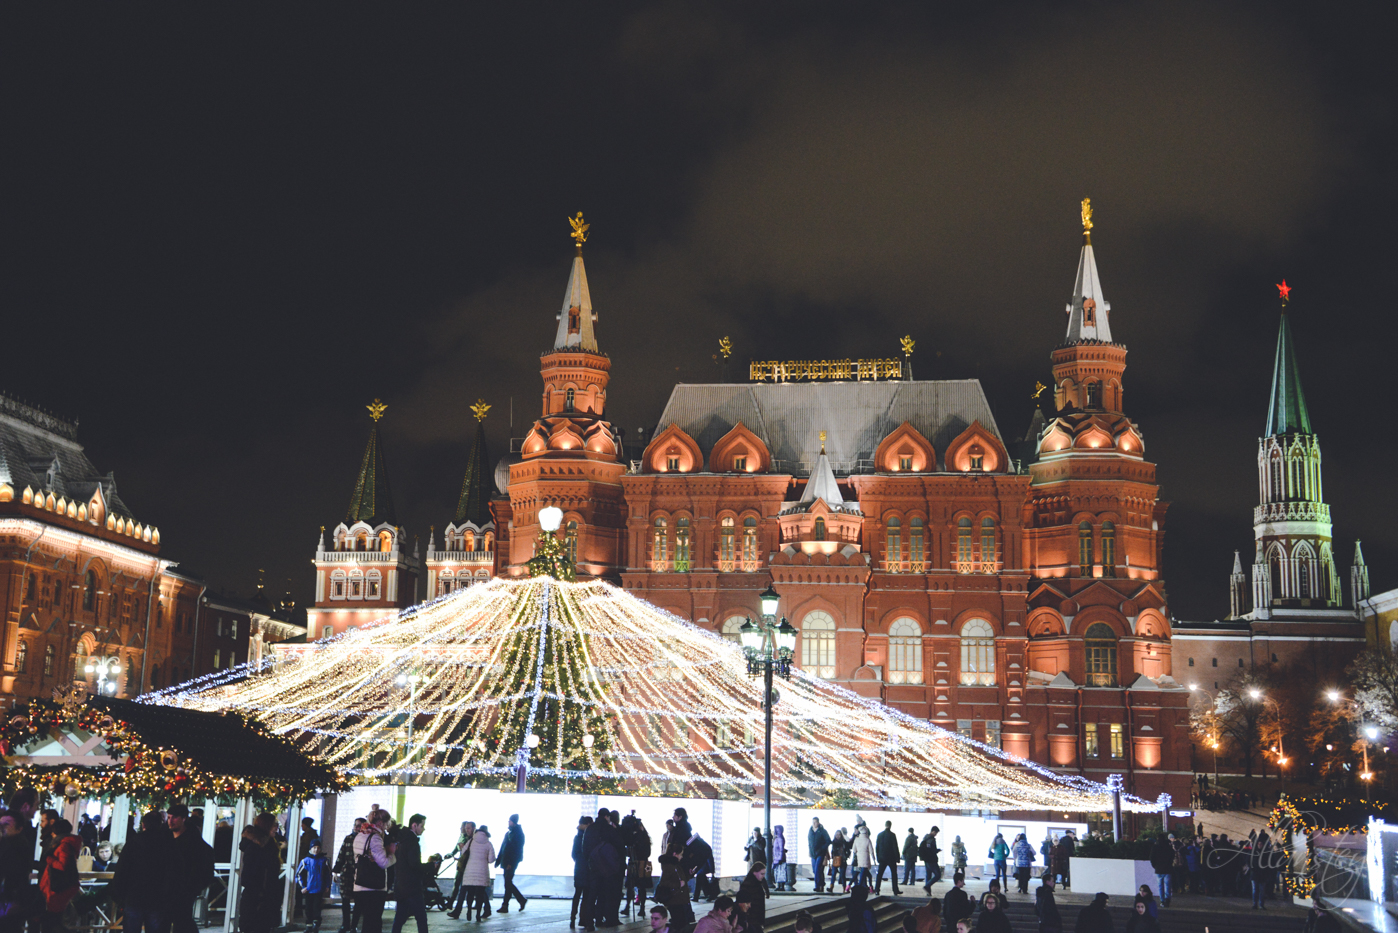 Moscow Christmas decorations, Christmas market, Christmas tree, State Historical Museum